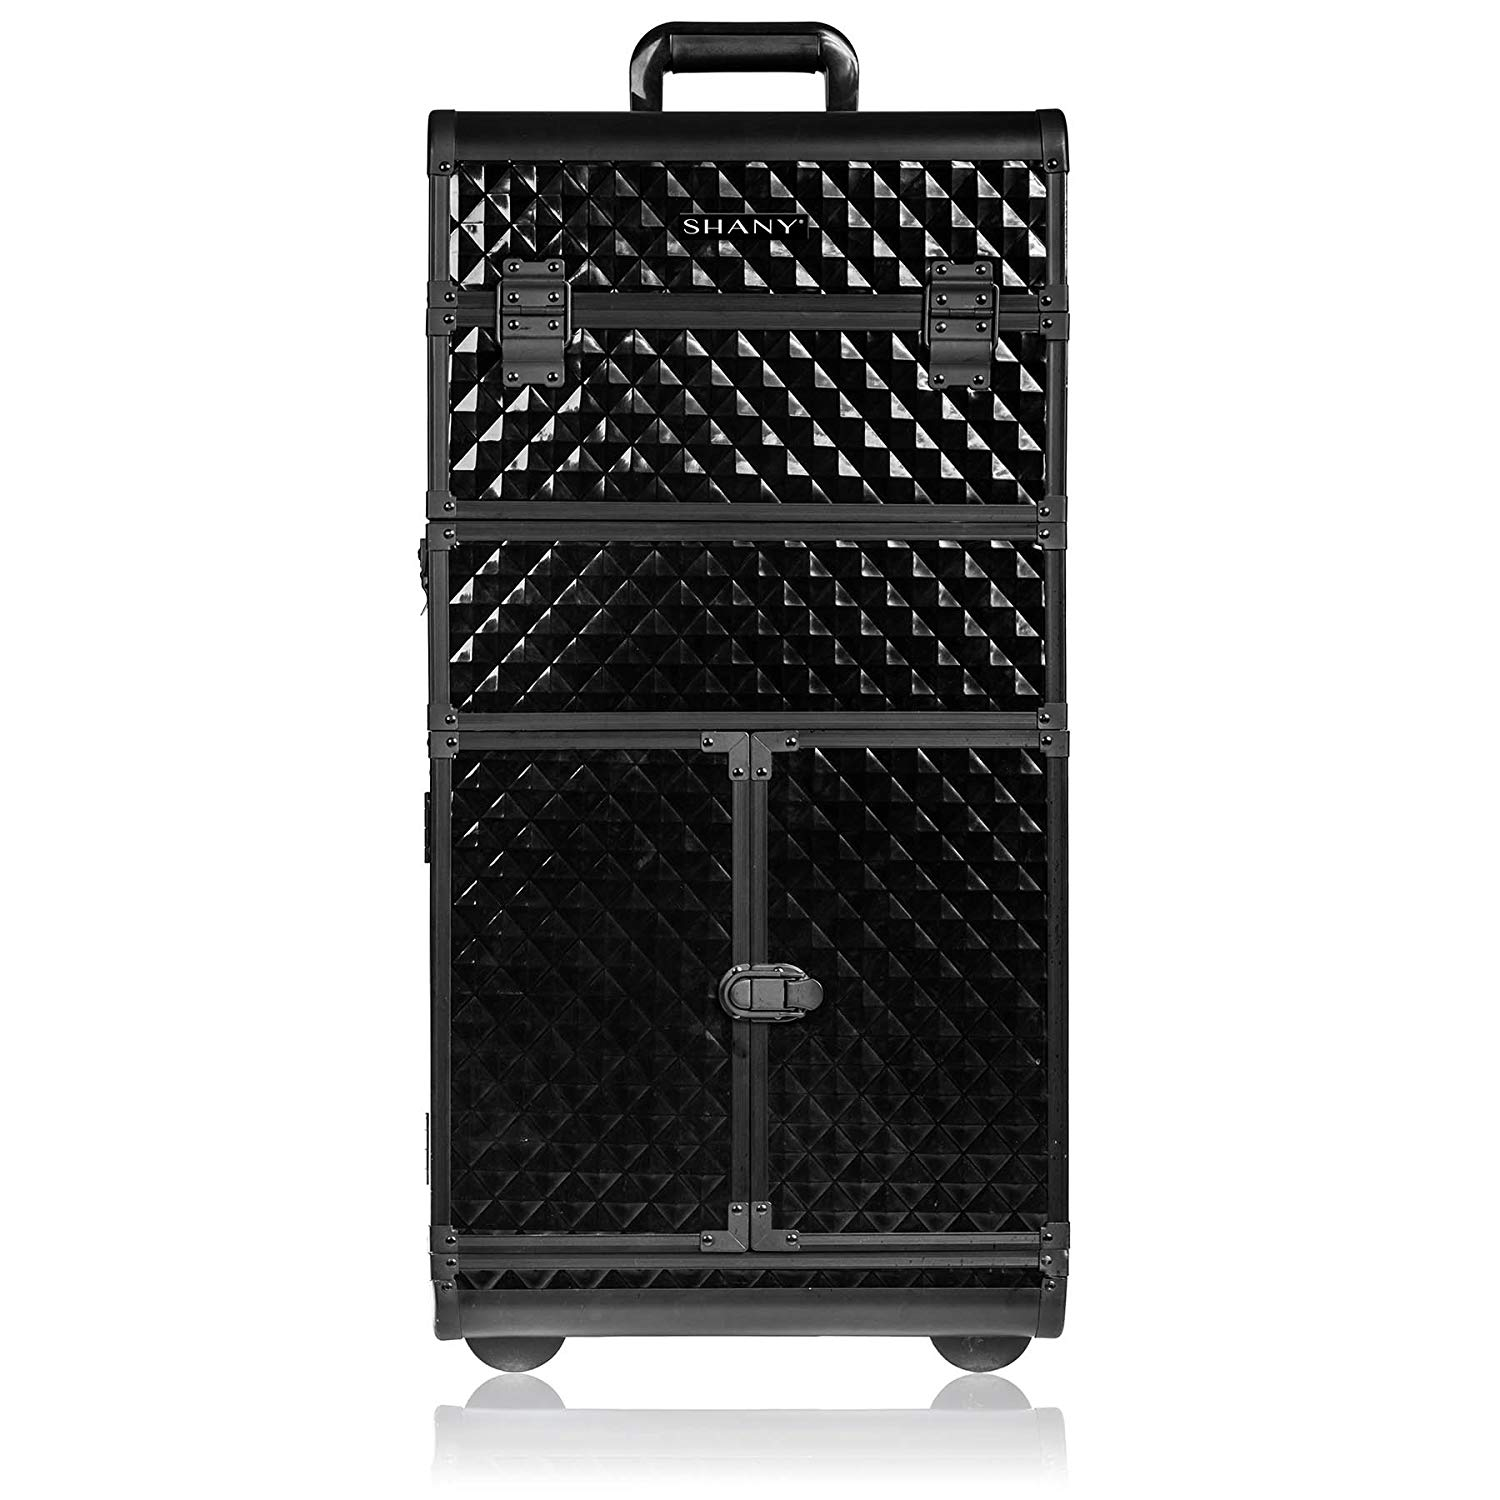 SHANY REBEL Series Pro Makeup Artists Rolling Train Case - Trolley Case - Curious Black Cat